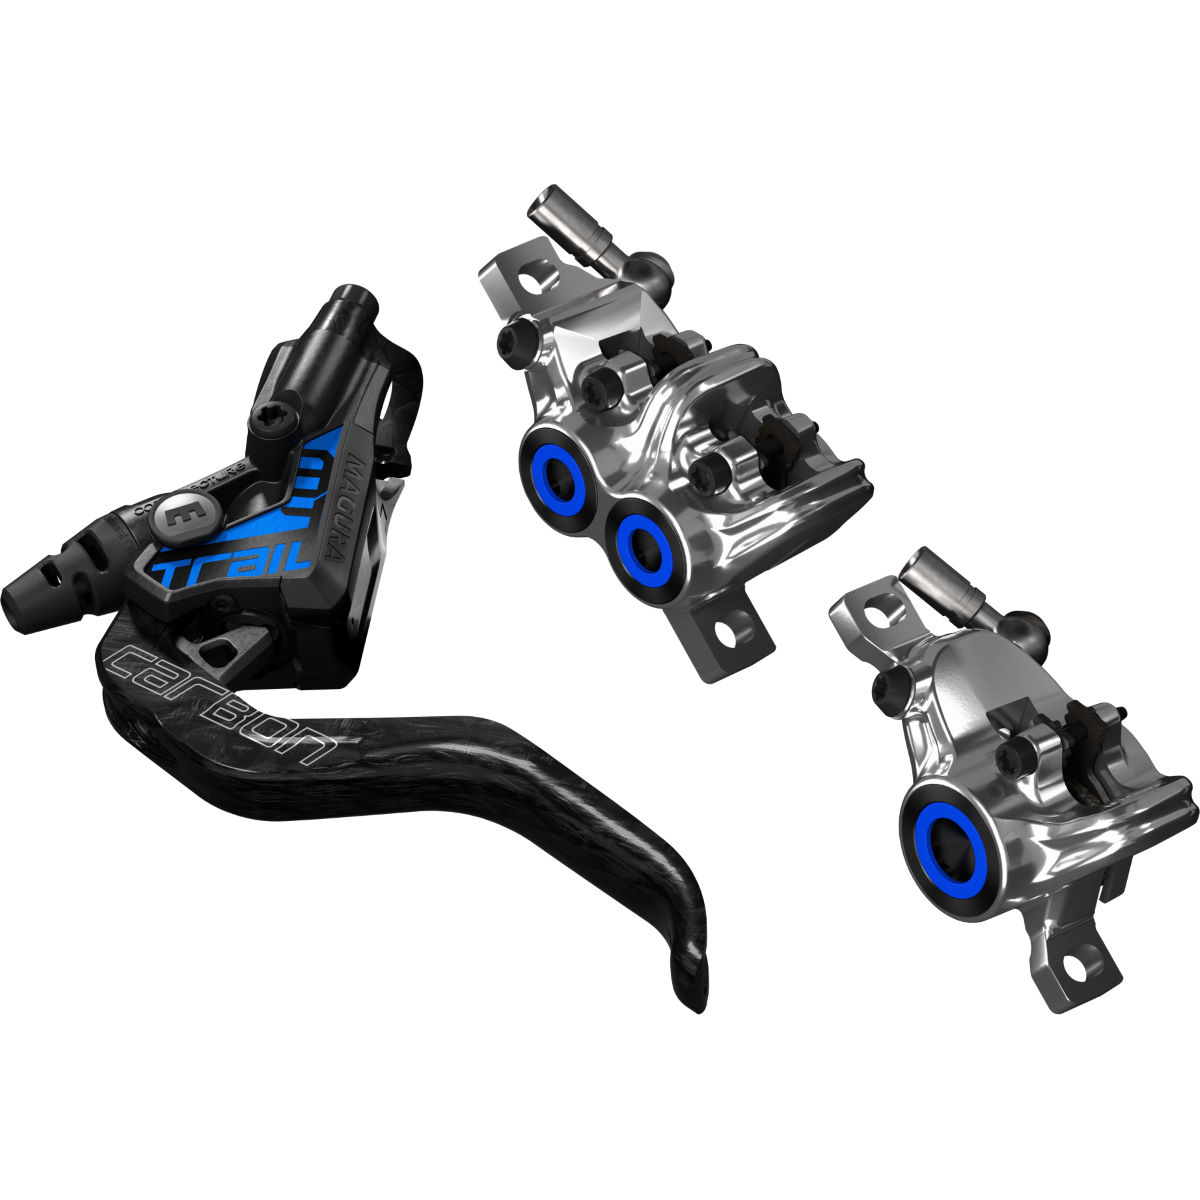 Magura MT Trail Carbon Disc Brake Set - Frenos de disco